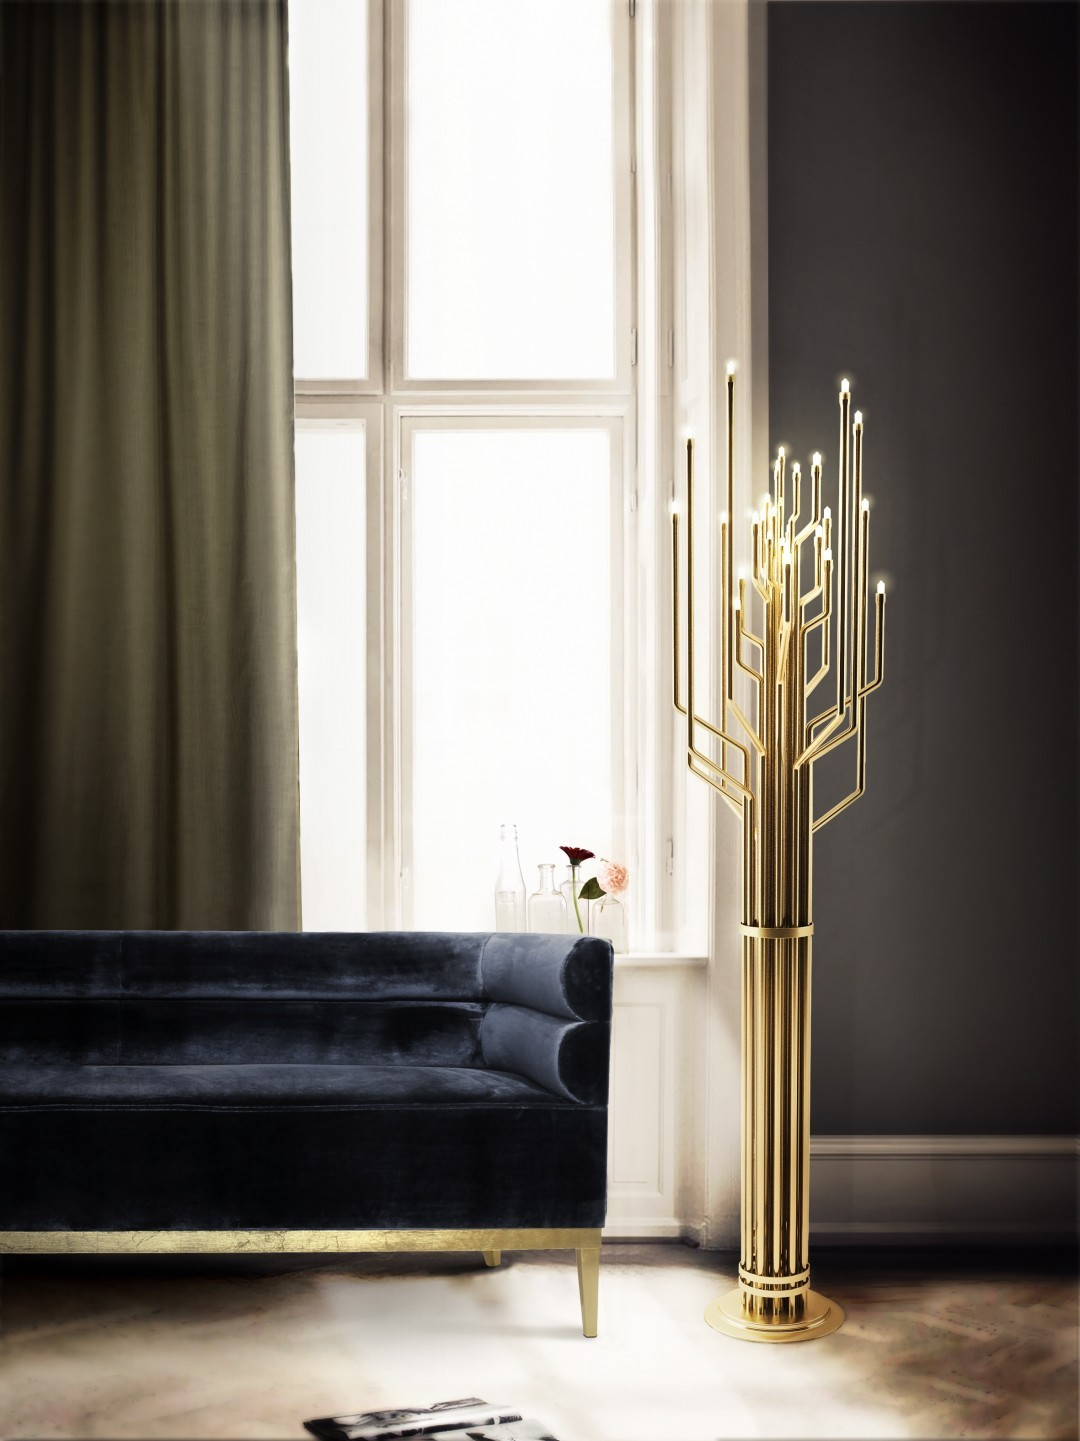 gold-plated floor lamps gold-plated floor lamps Coveted Gold-Plated Floor Lamps For Your Modern Home! Coveted Gold Plated Floor Lamps For Your Modern Home5